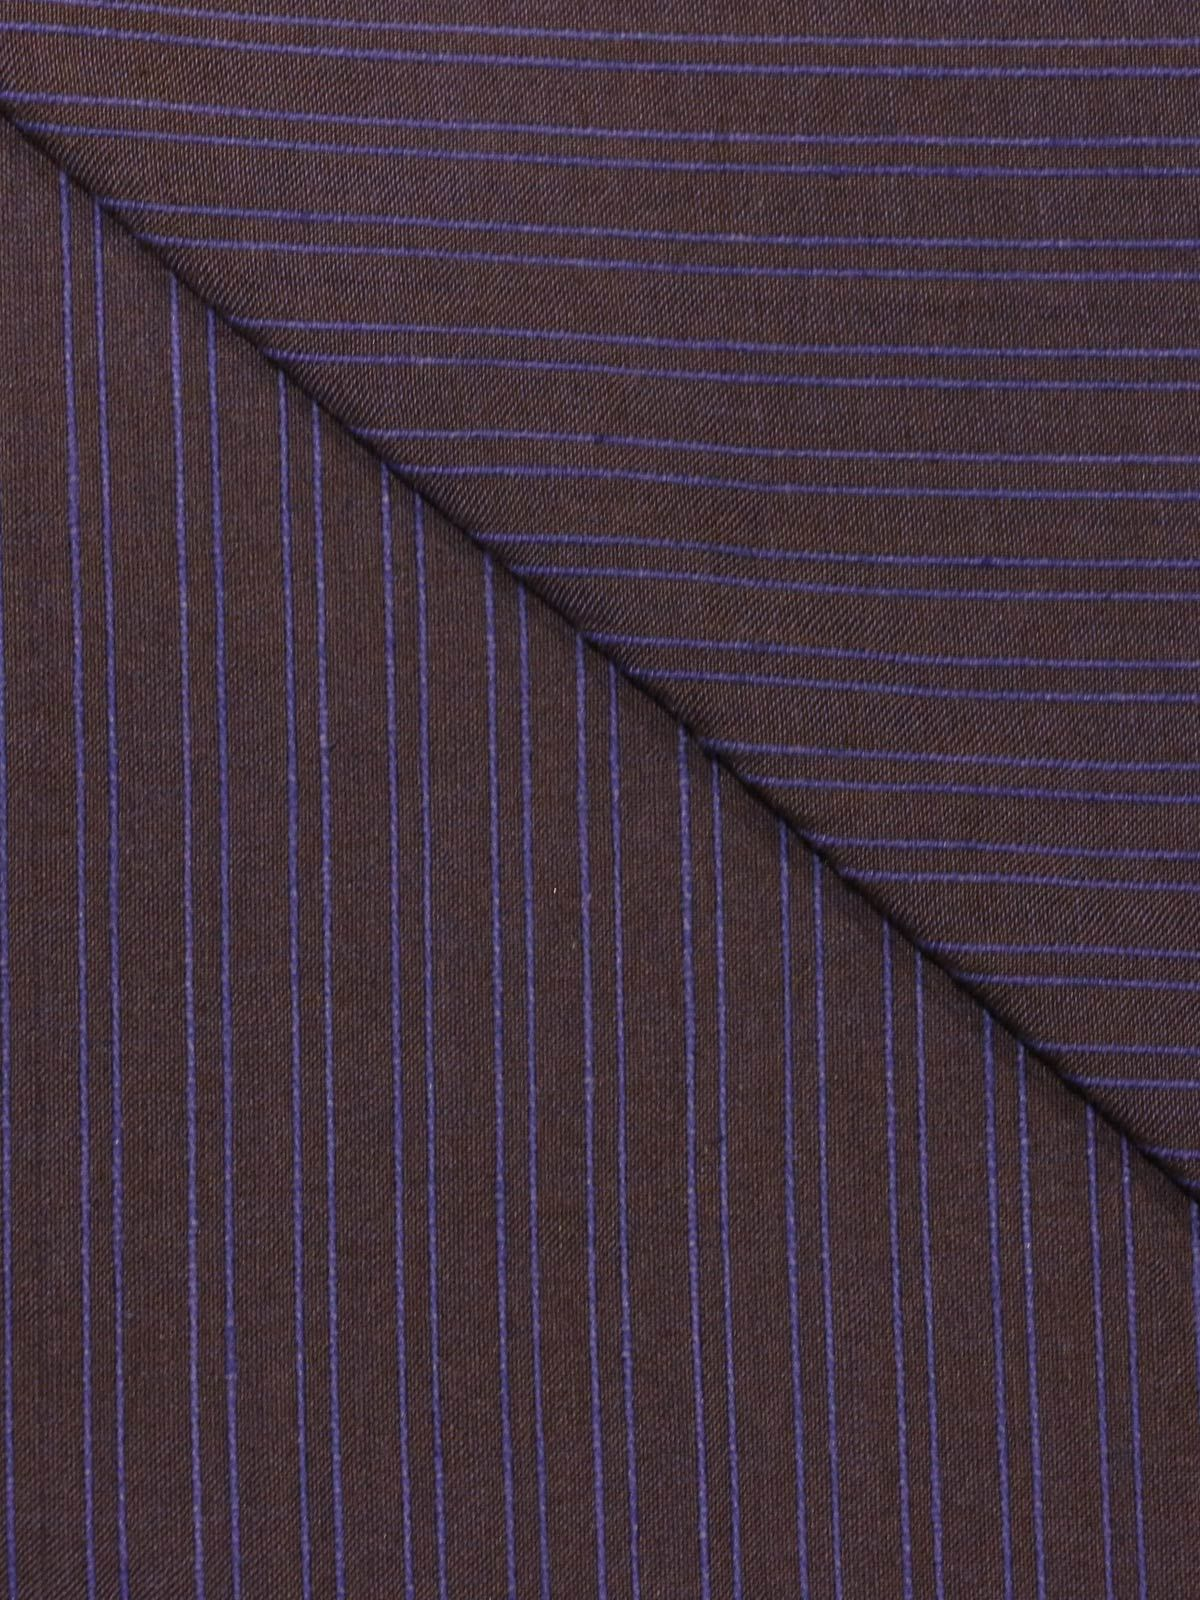 Purple color mangalgiri stripes handloom cotton fabric